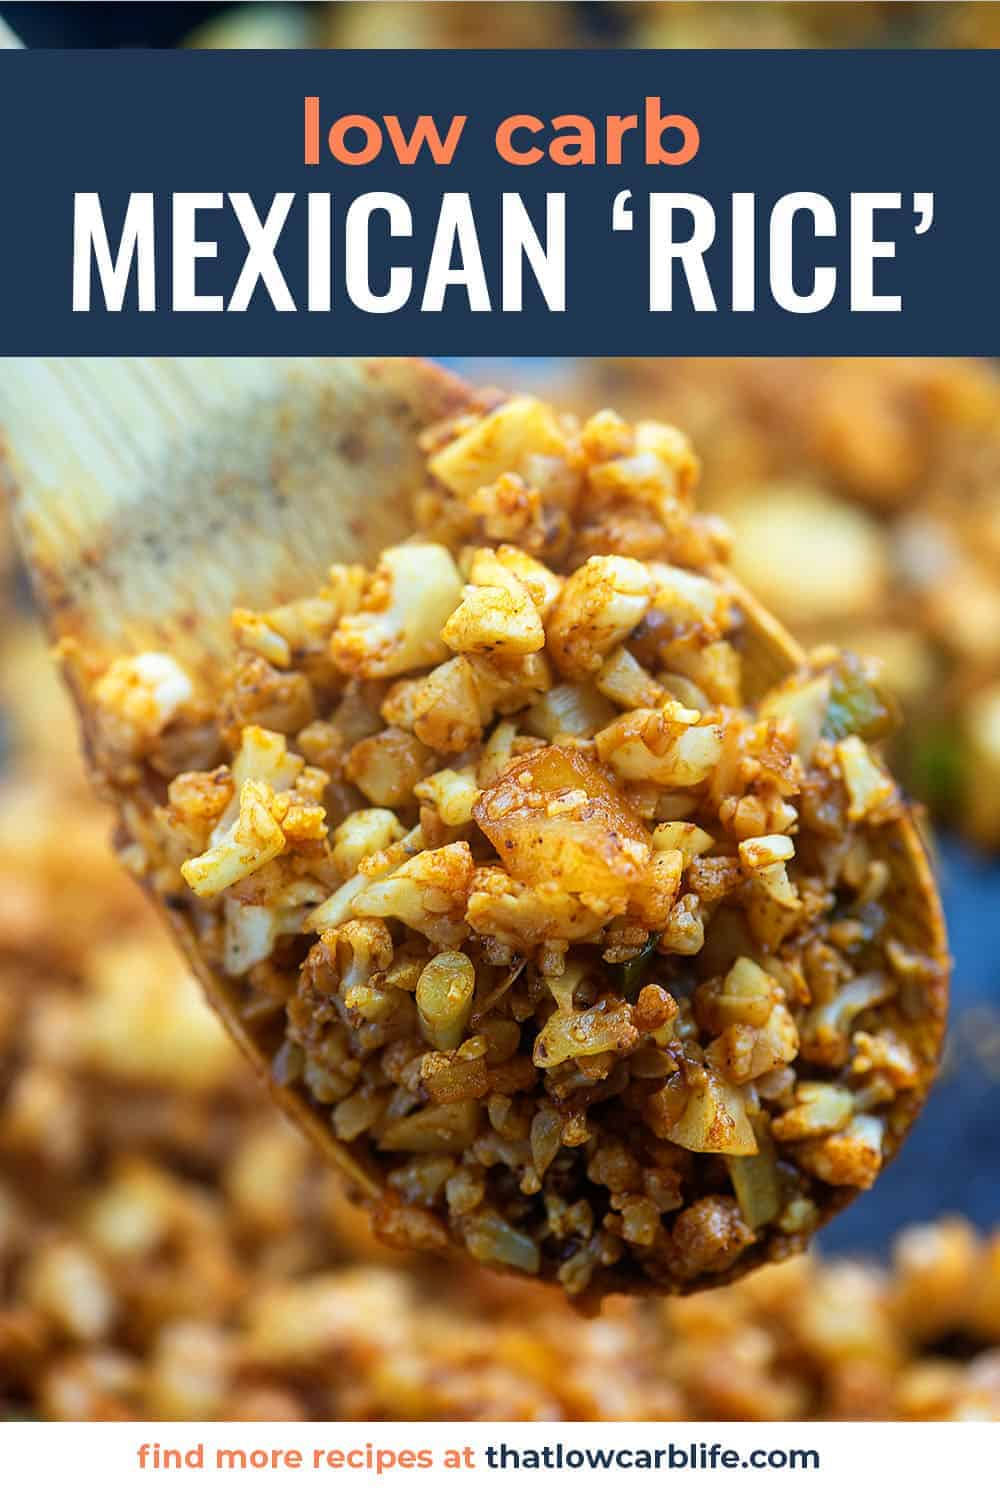 A wooden spoon holding Mexican cauliflower rice up to the camera.